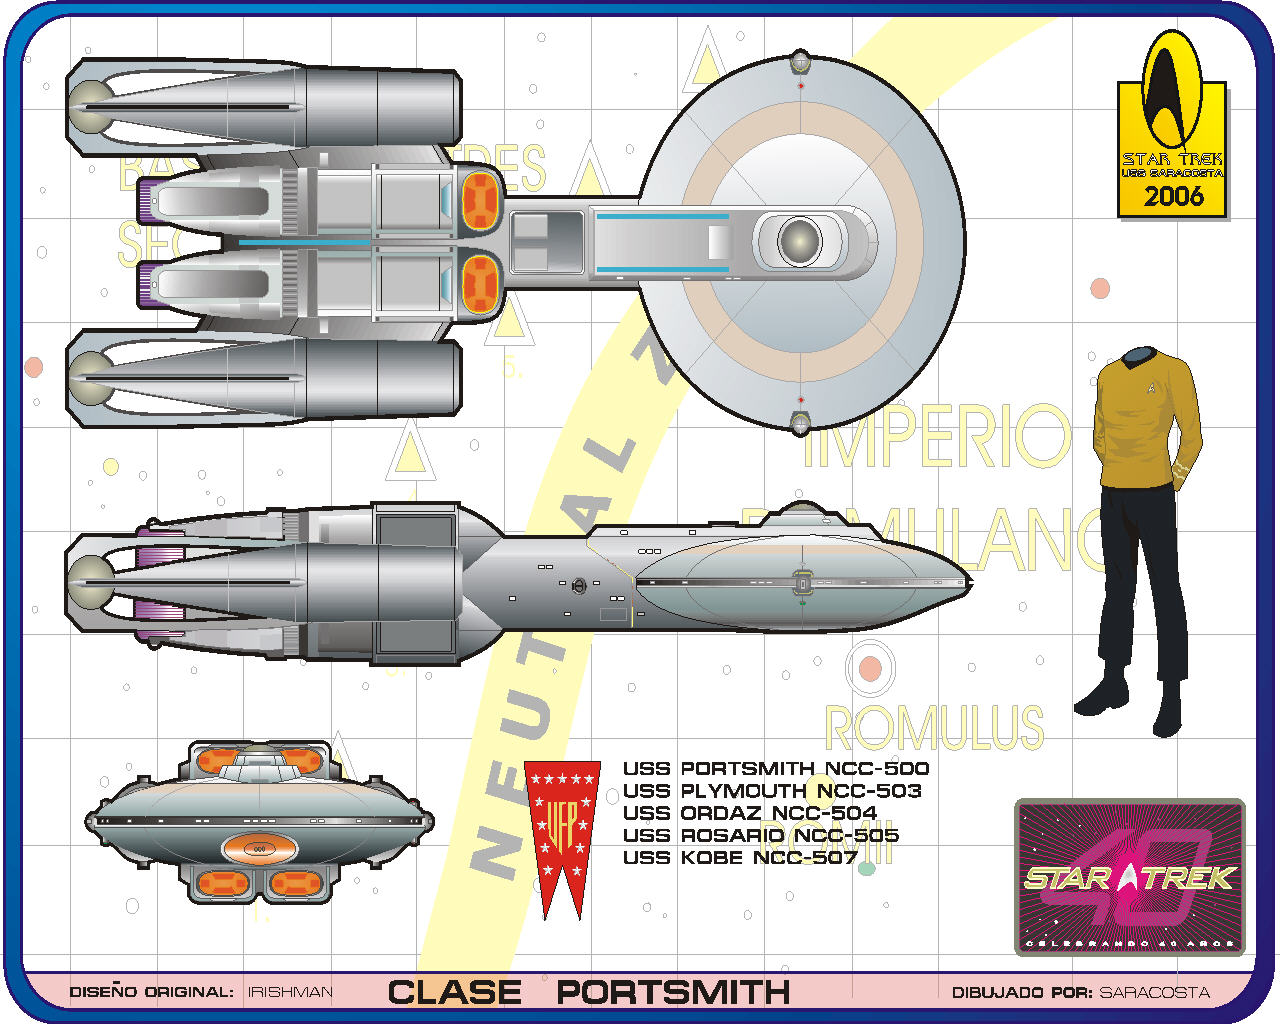 Star Trek Blueprints: U.S.S. Saracosta NCC-9737 Website Schematics